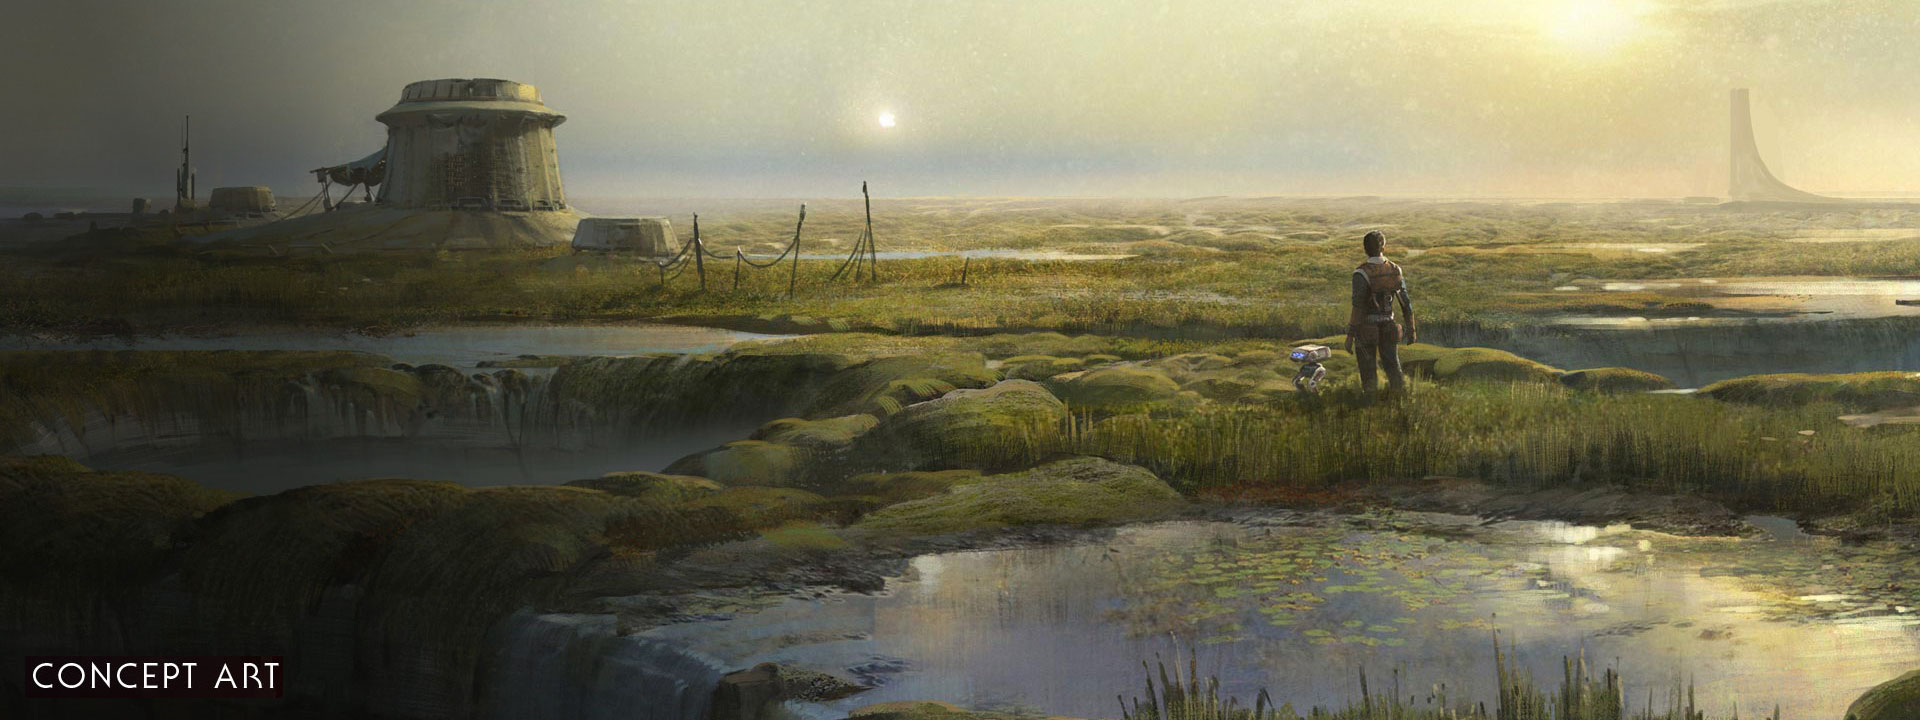 Concept art, a man and a bot stand in a flooded marshland